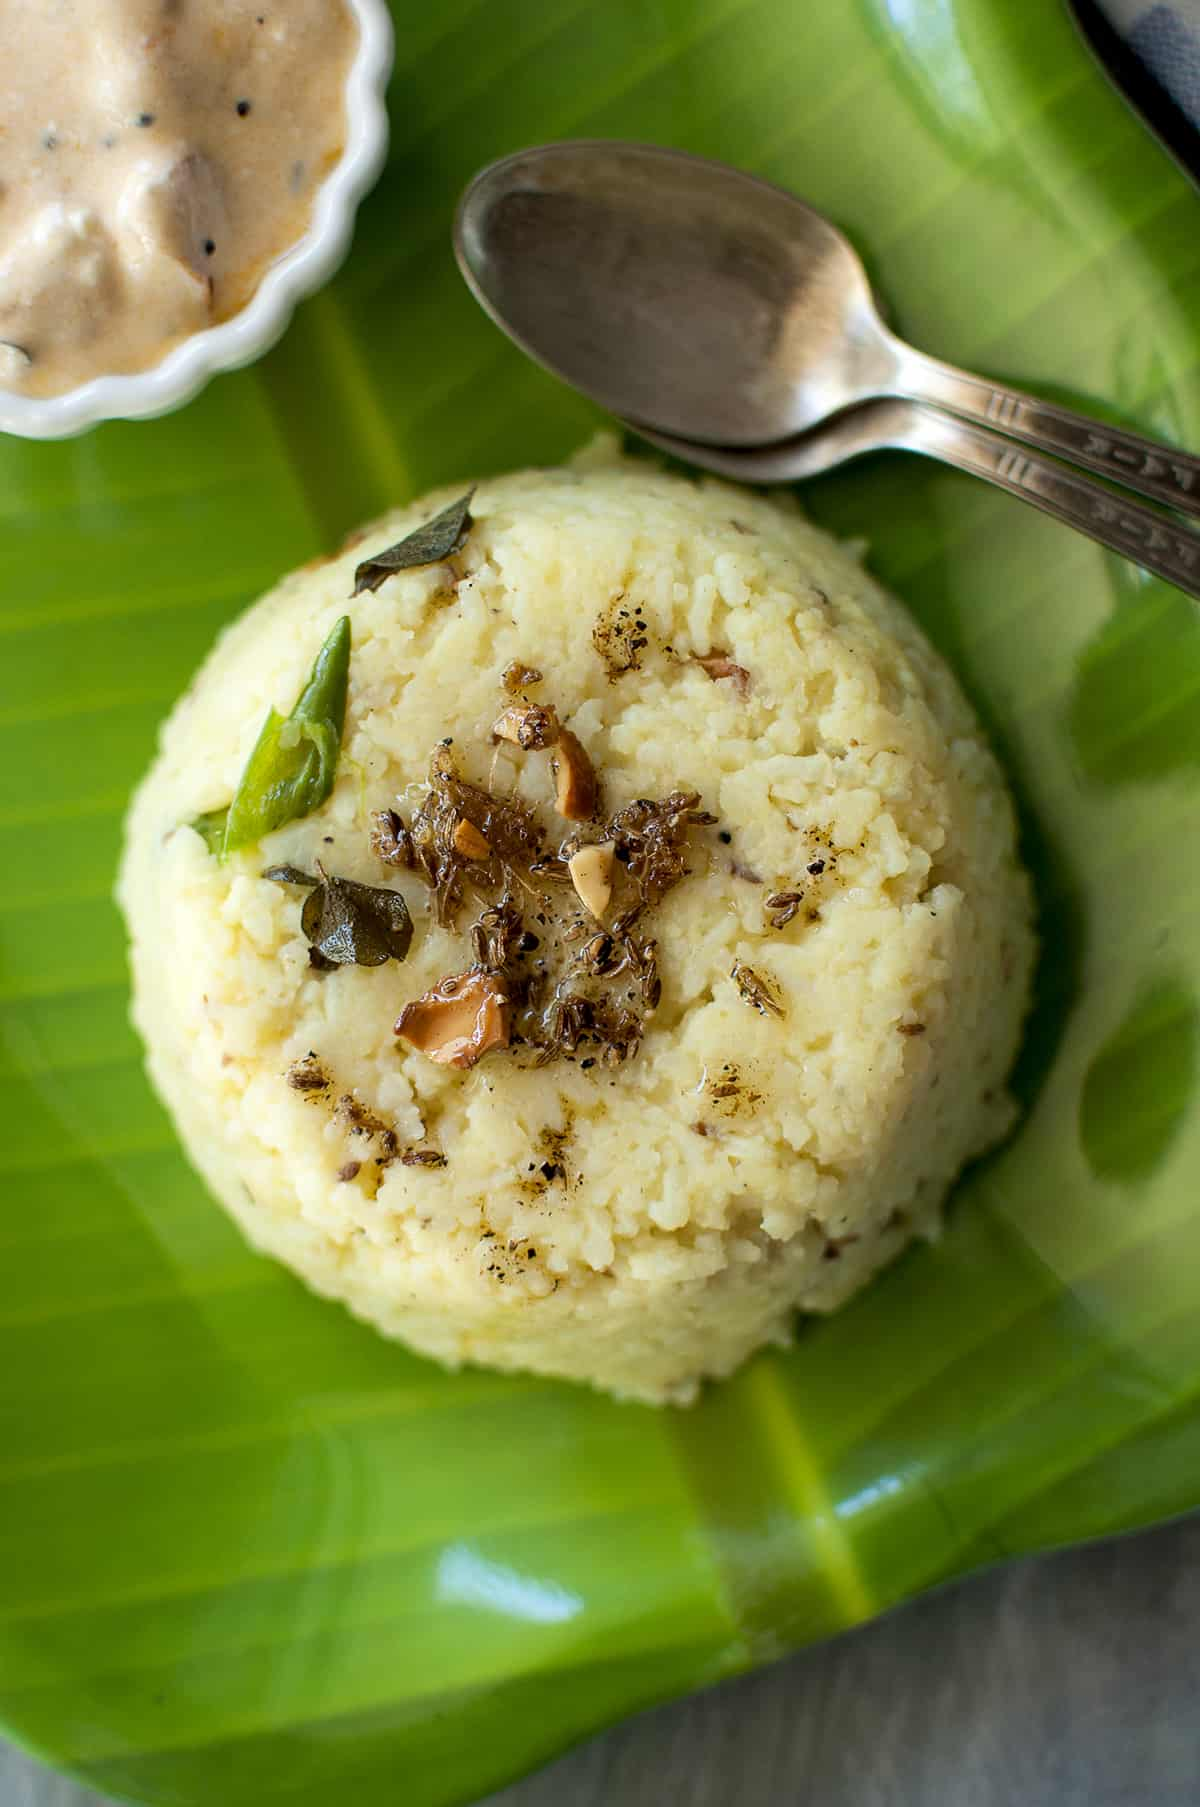 Green plate with pongal and spoons